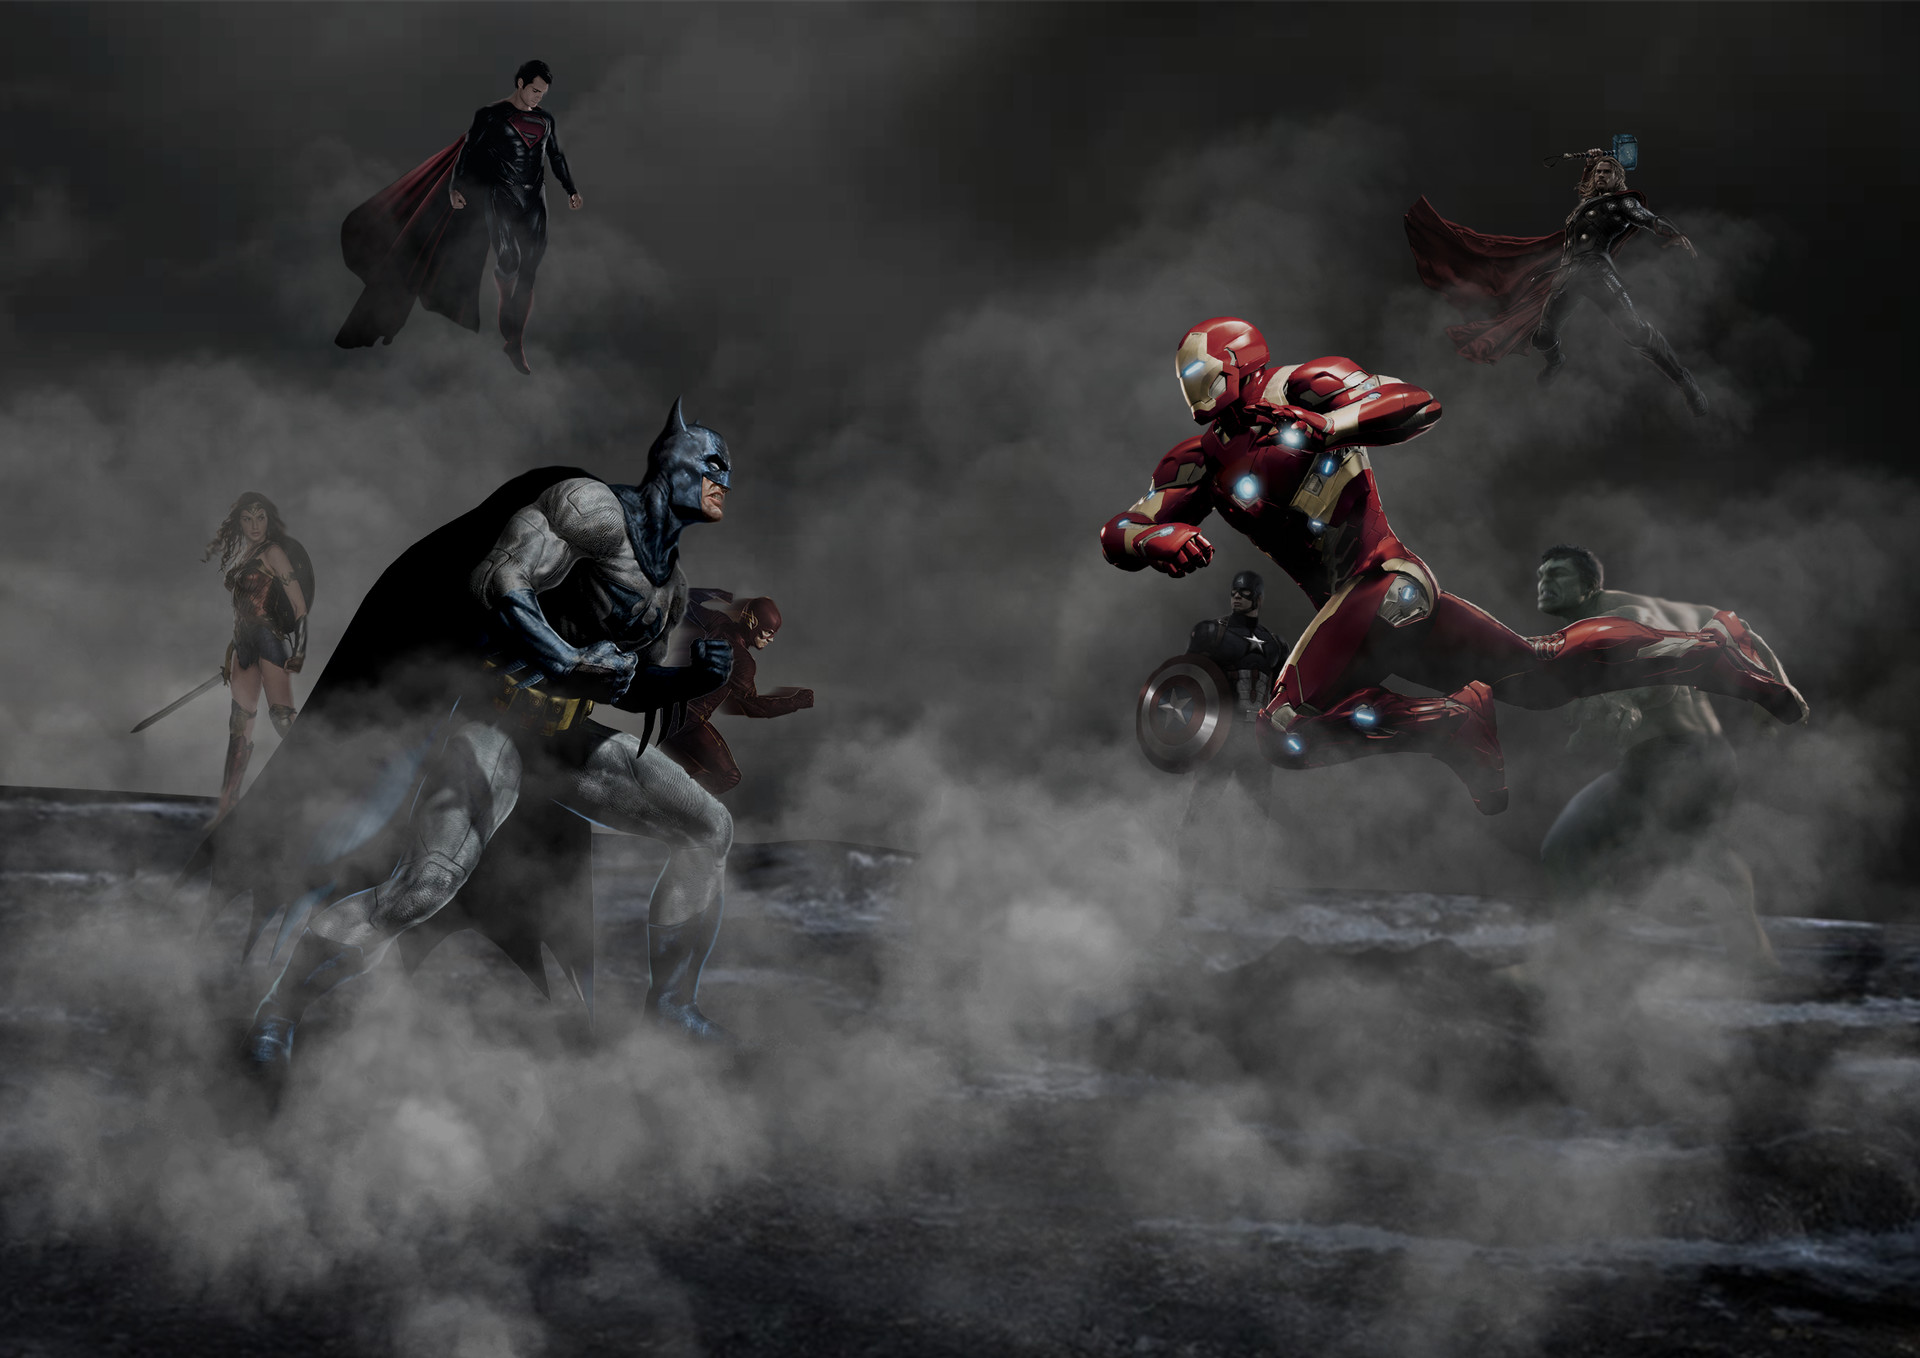 Justice League Vs The Avengers Hd Superheroes 4k Wallpapers